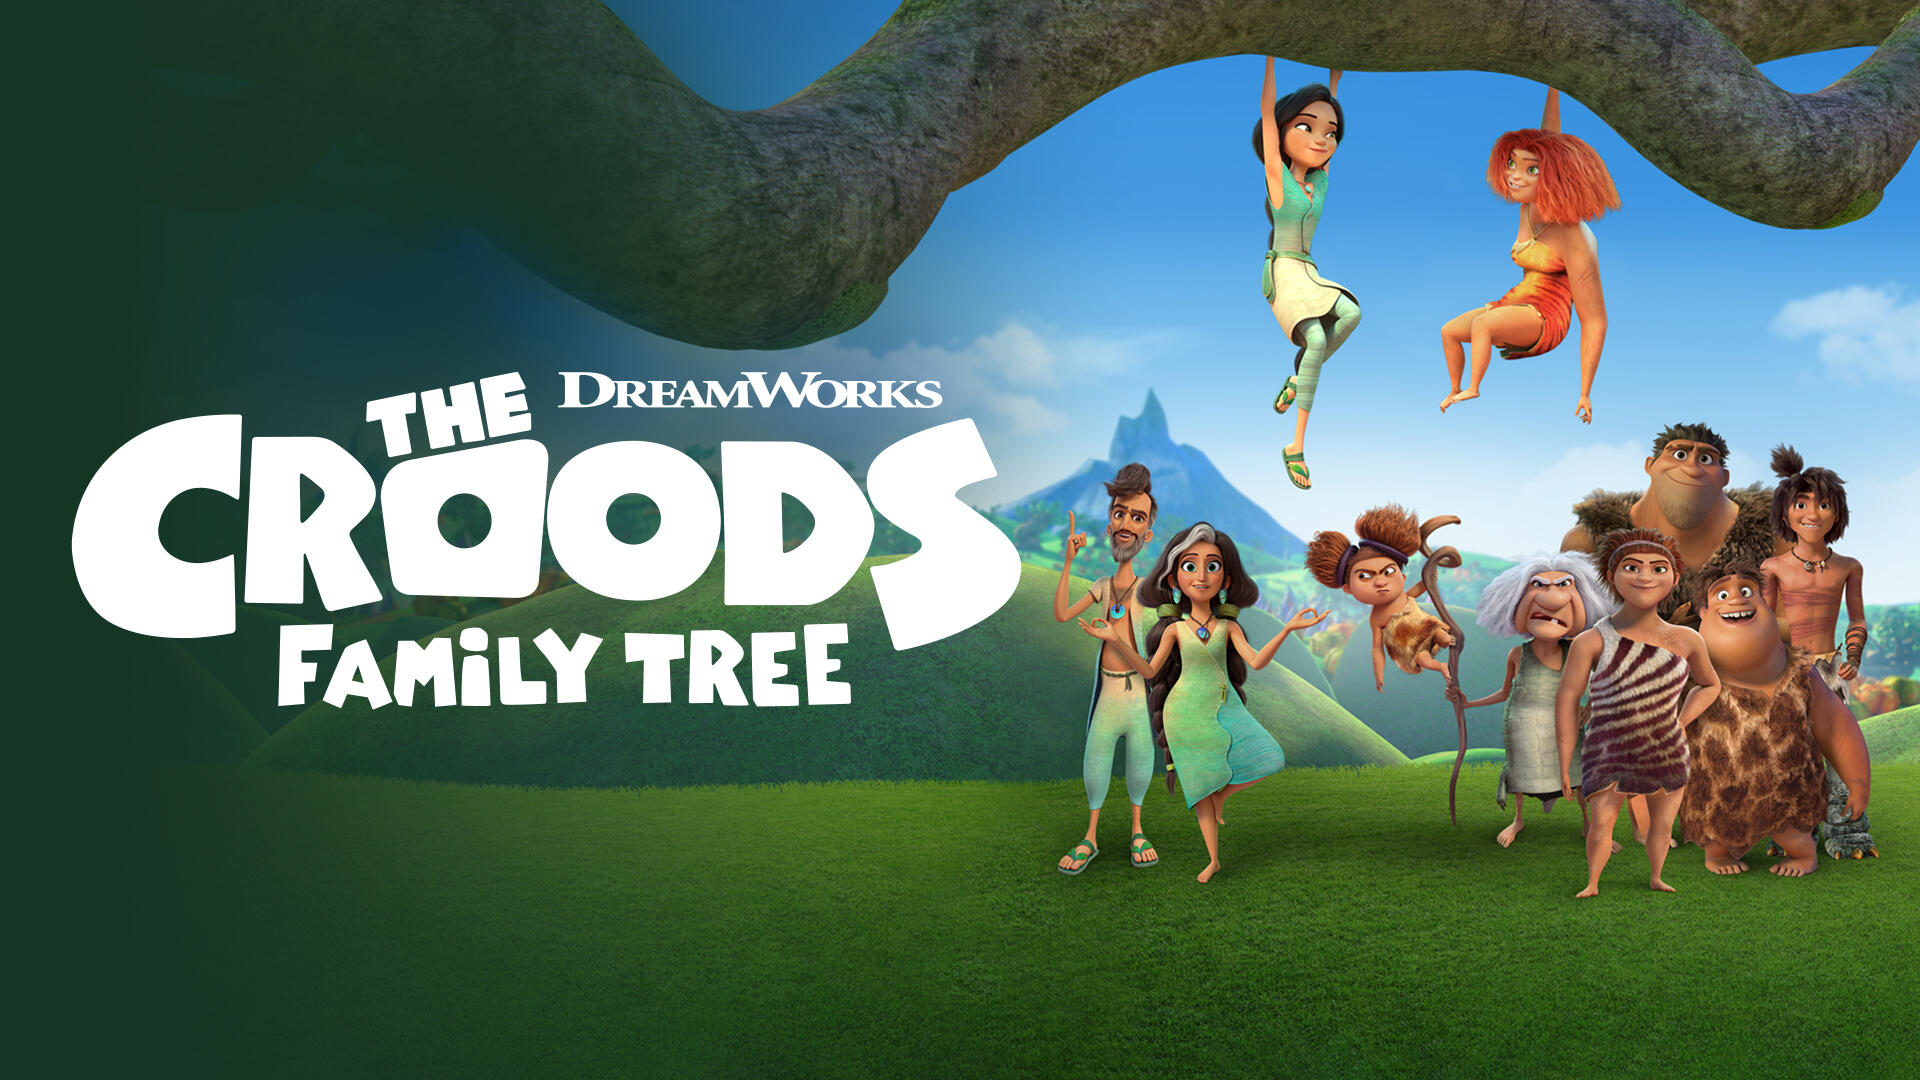 The Croods: Family Tree -- Following the events in the feature film THE CROODS: A NEW AGE, two very different families join forces to create a new community, an us-against-the-world, cave person co-op on the most amazing farm in the history of prehistory! (Courtesy of DreamWorks)